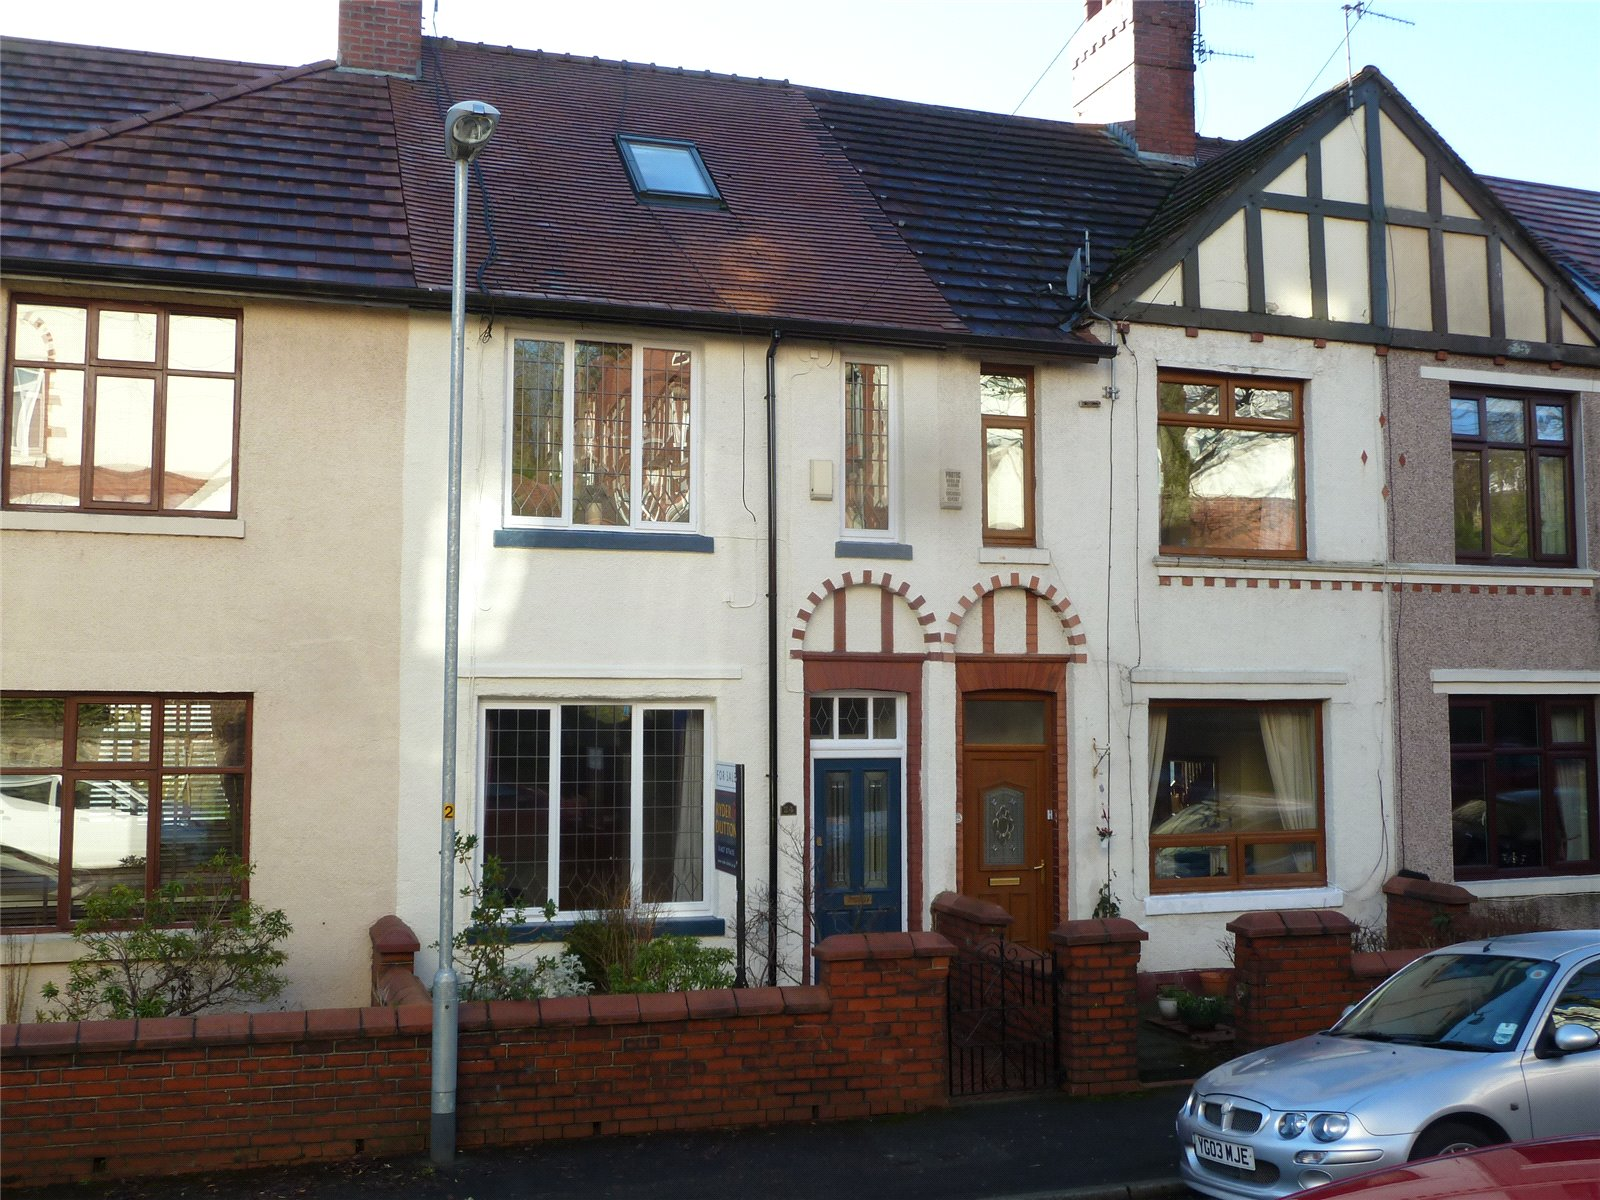 2 Bedrooms Terraced House for sale in Neale Avenue, Greenfield, Saddleworth, OL3